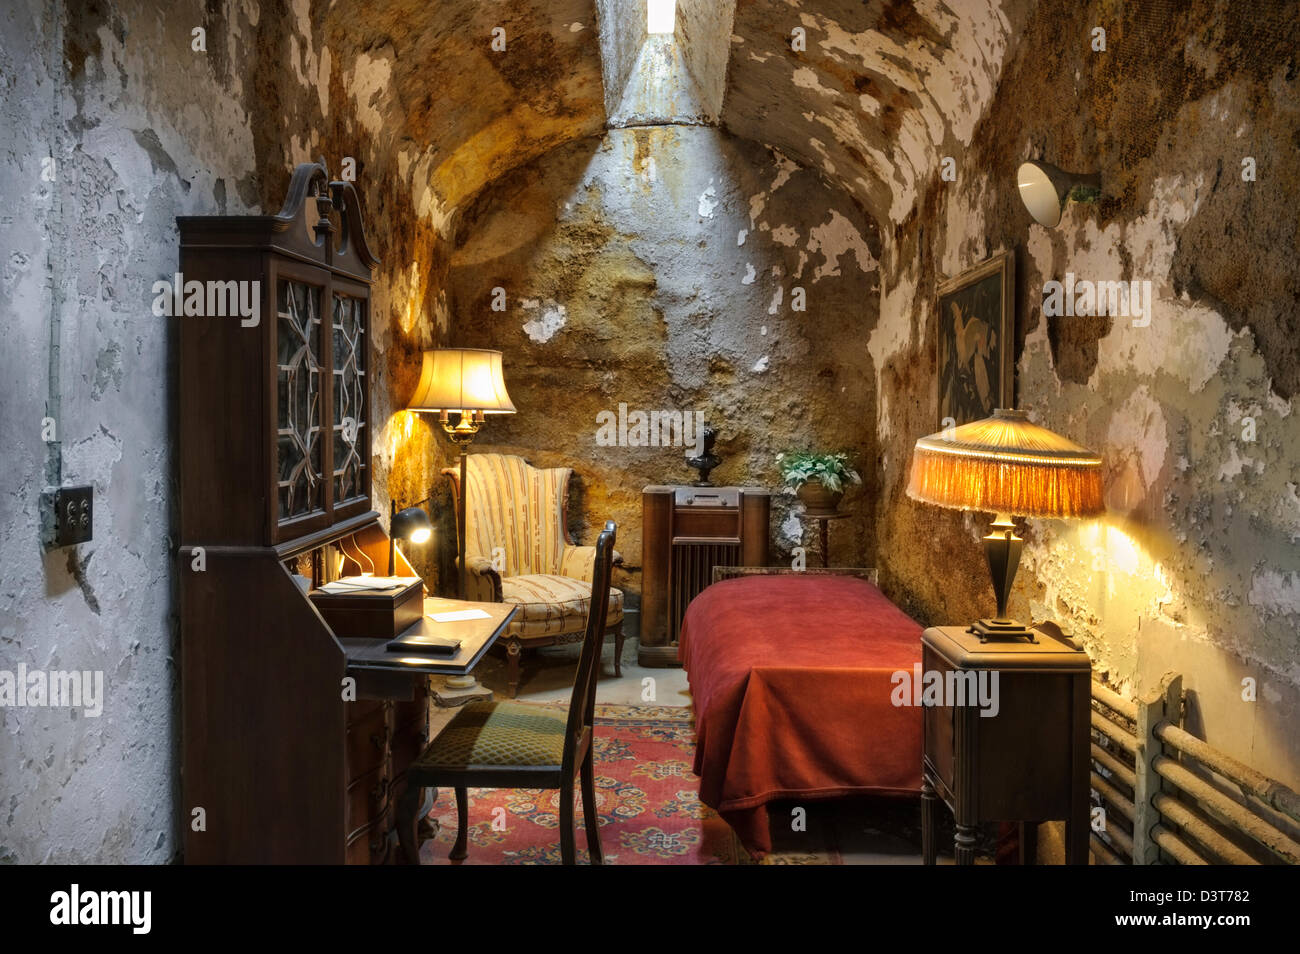 Al Capone's prison cell with furnishings during his stay at Eastern State Penitentiary, Philadelphia, PA, USA. - Stock Image